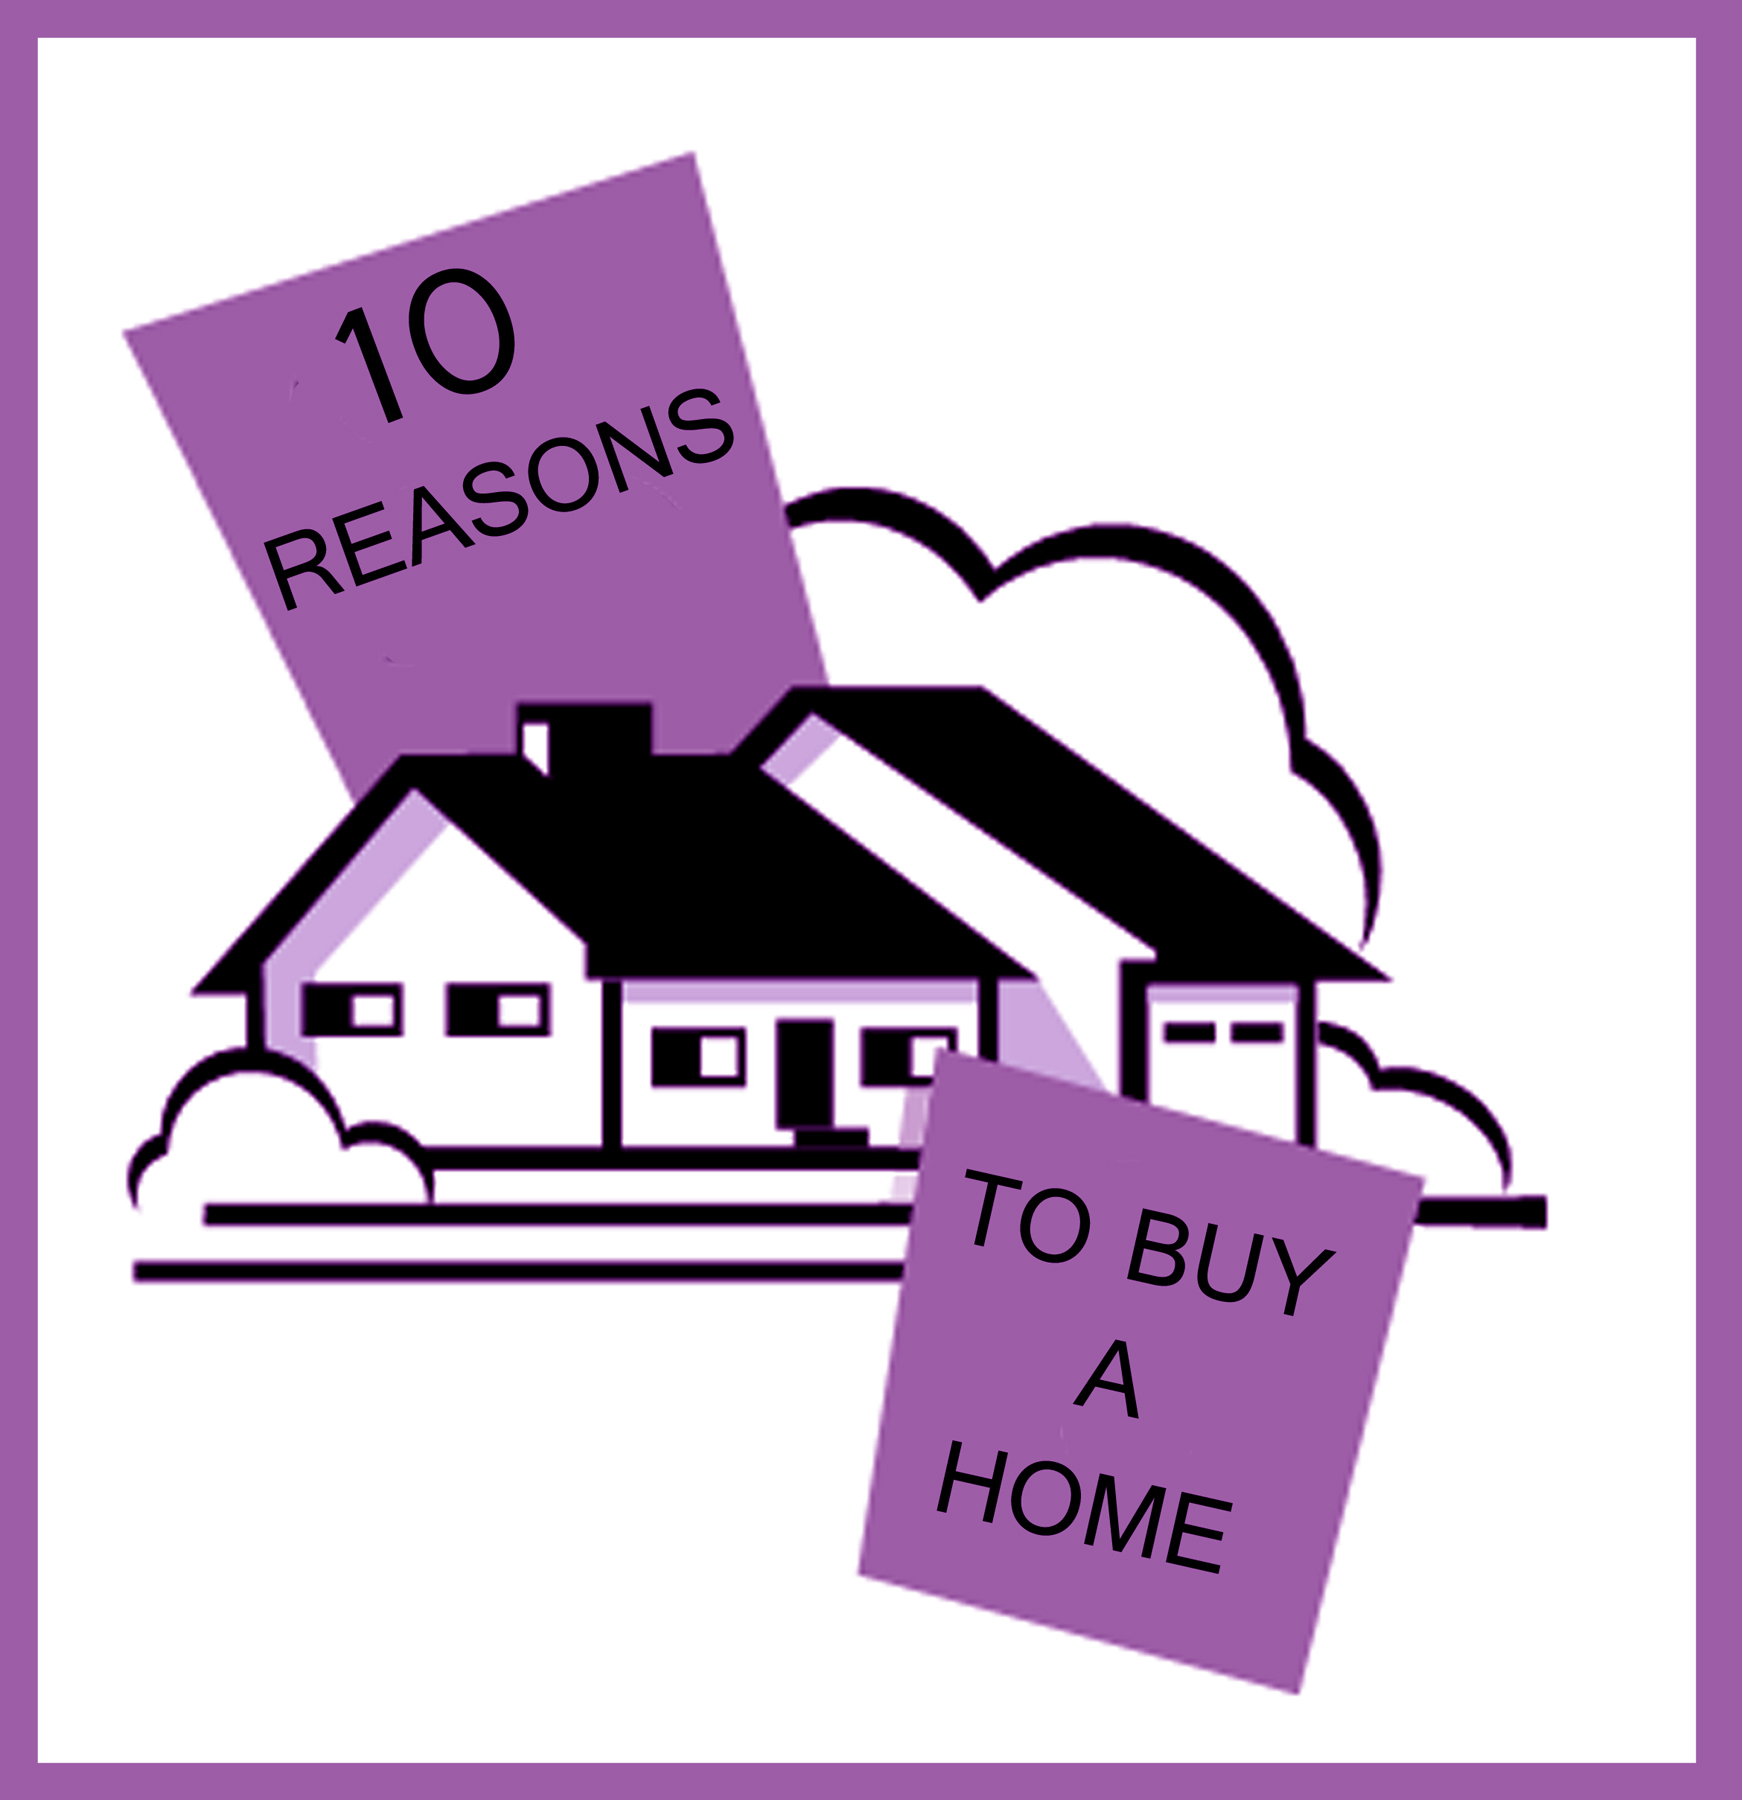 10 Reasons To Buy a Home.